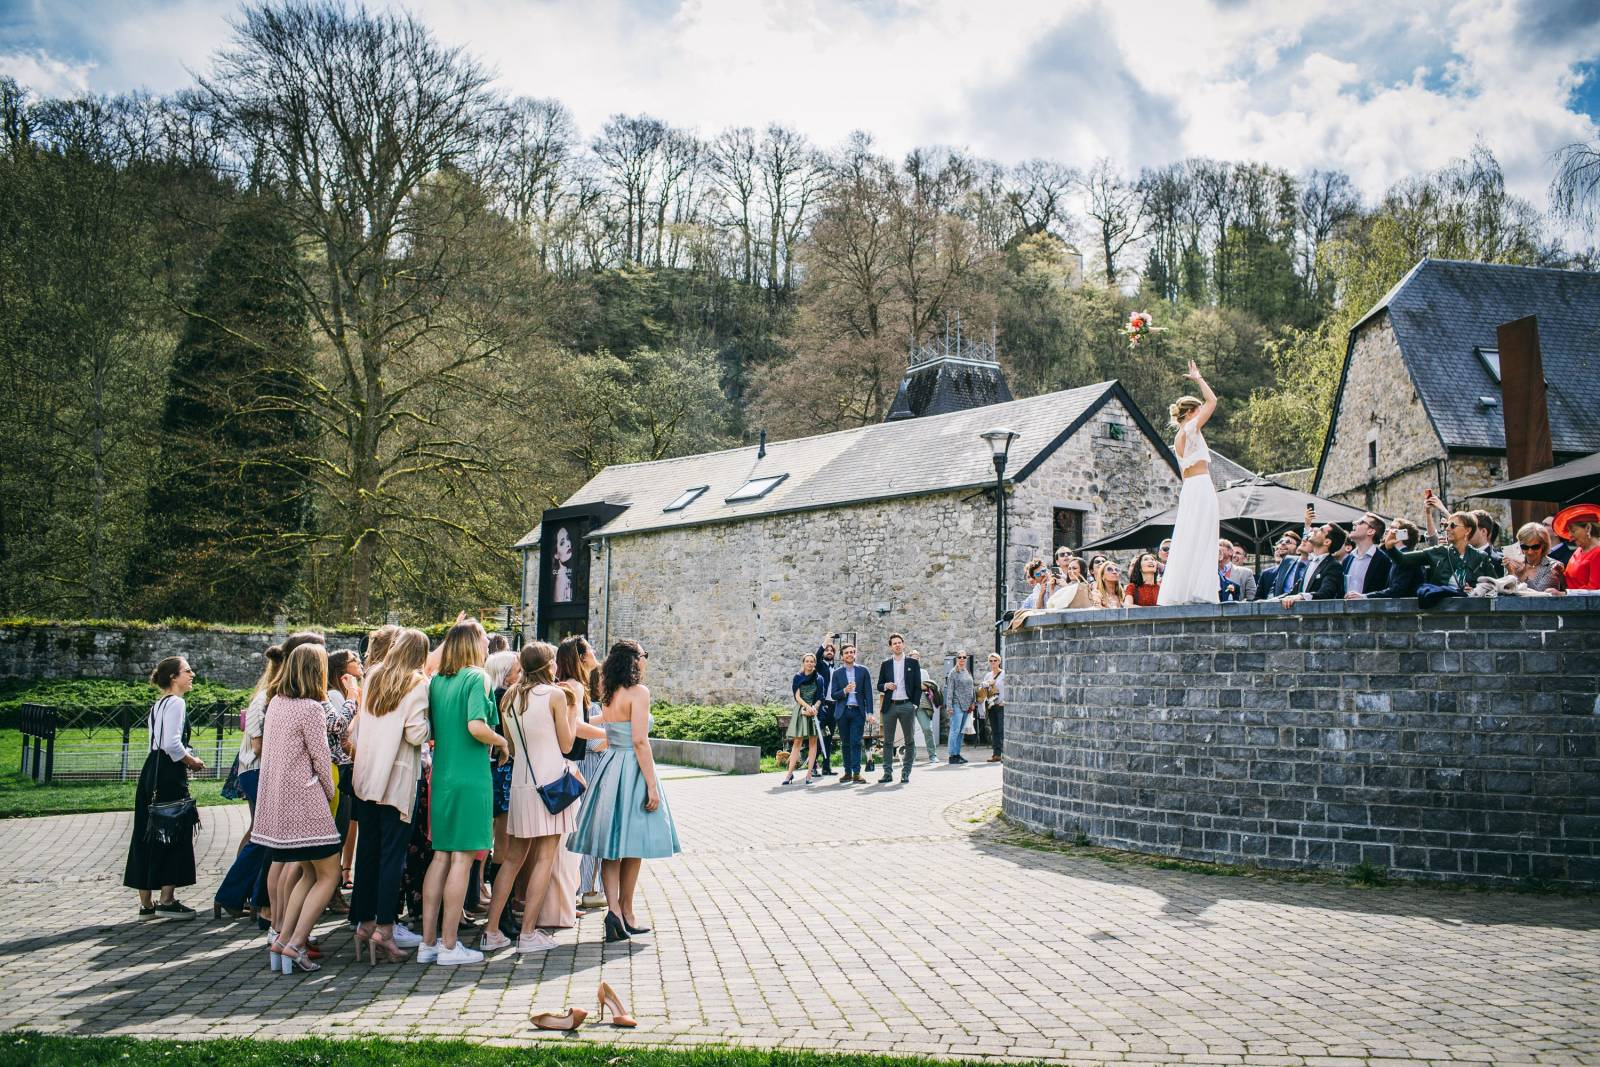 Real Wedding - Sanglier des Ardennes - House of Weddings  - 41